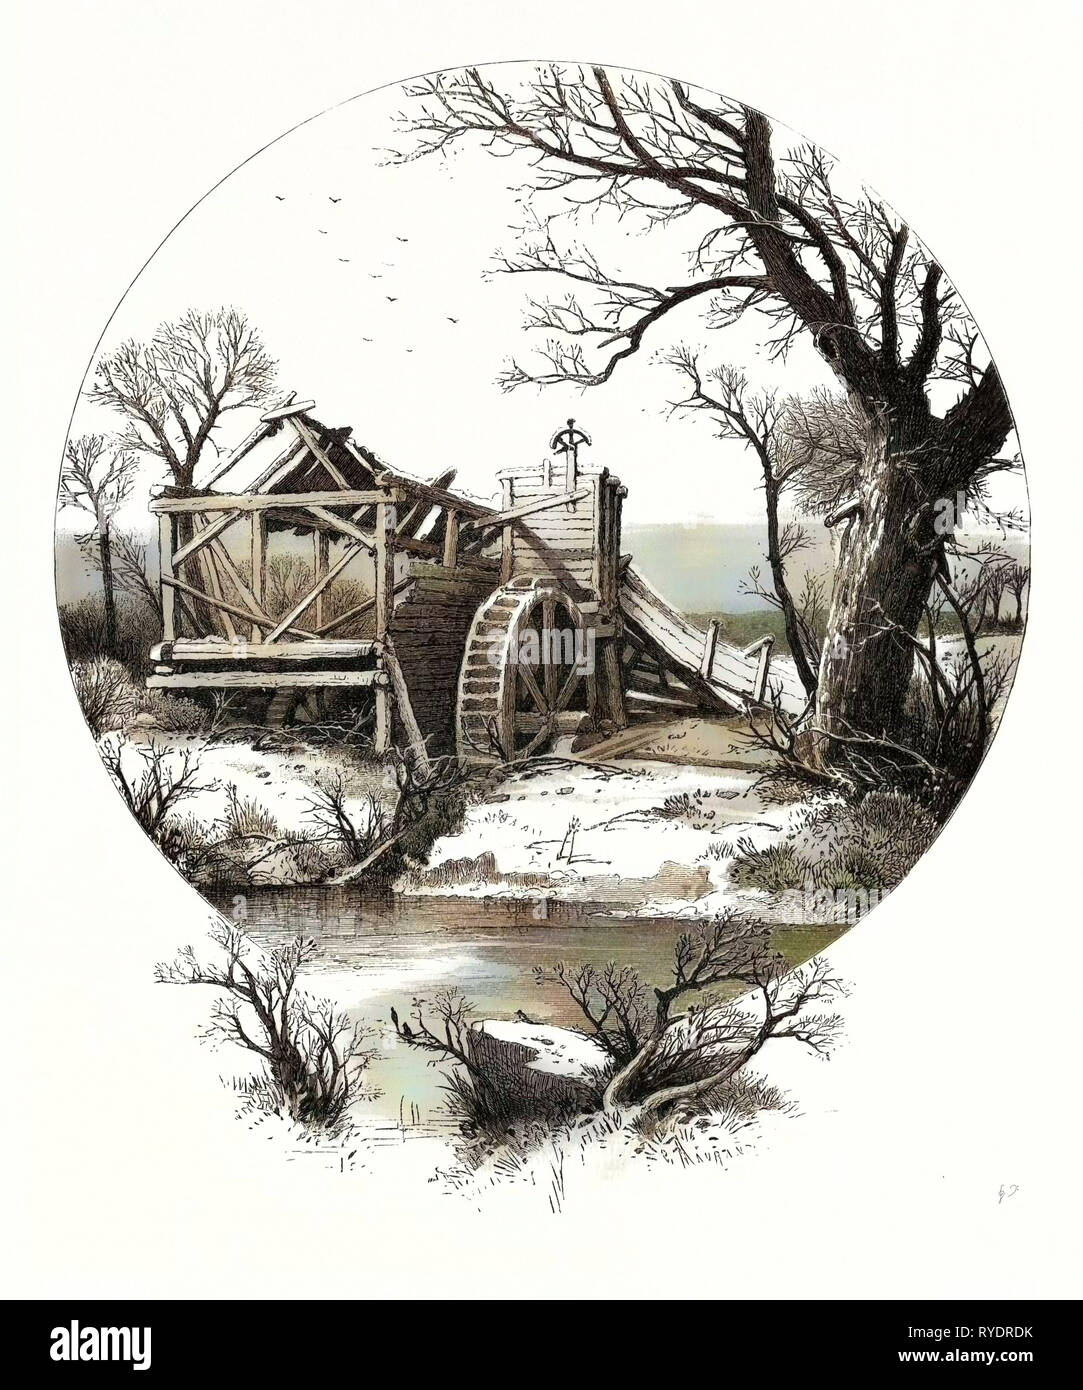 Winter. The Trees Stand Shivering in the Frosty Air, on the Branch and Bank Lies Thick the Clinging Snow. A Wreck, Beyond Repair, the Old Mill Seems - Stock Image